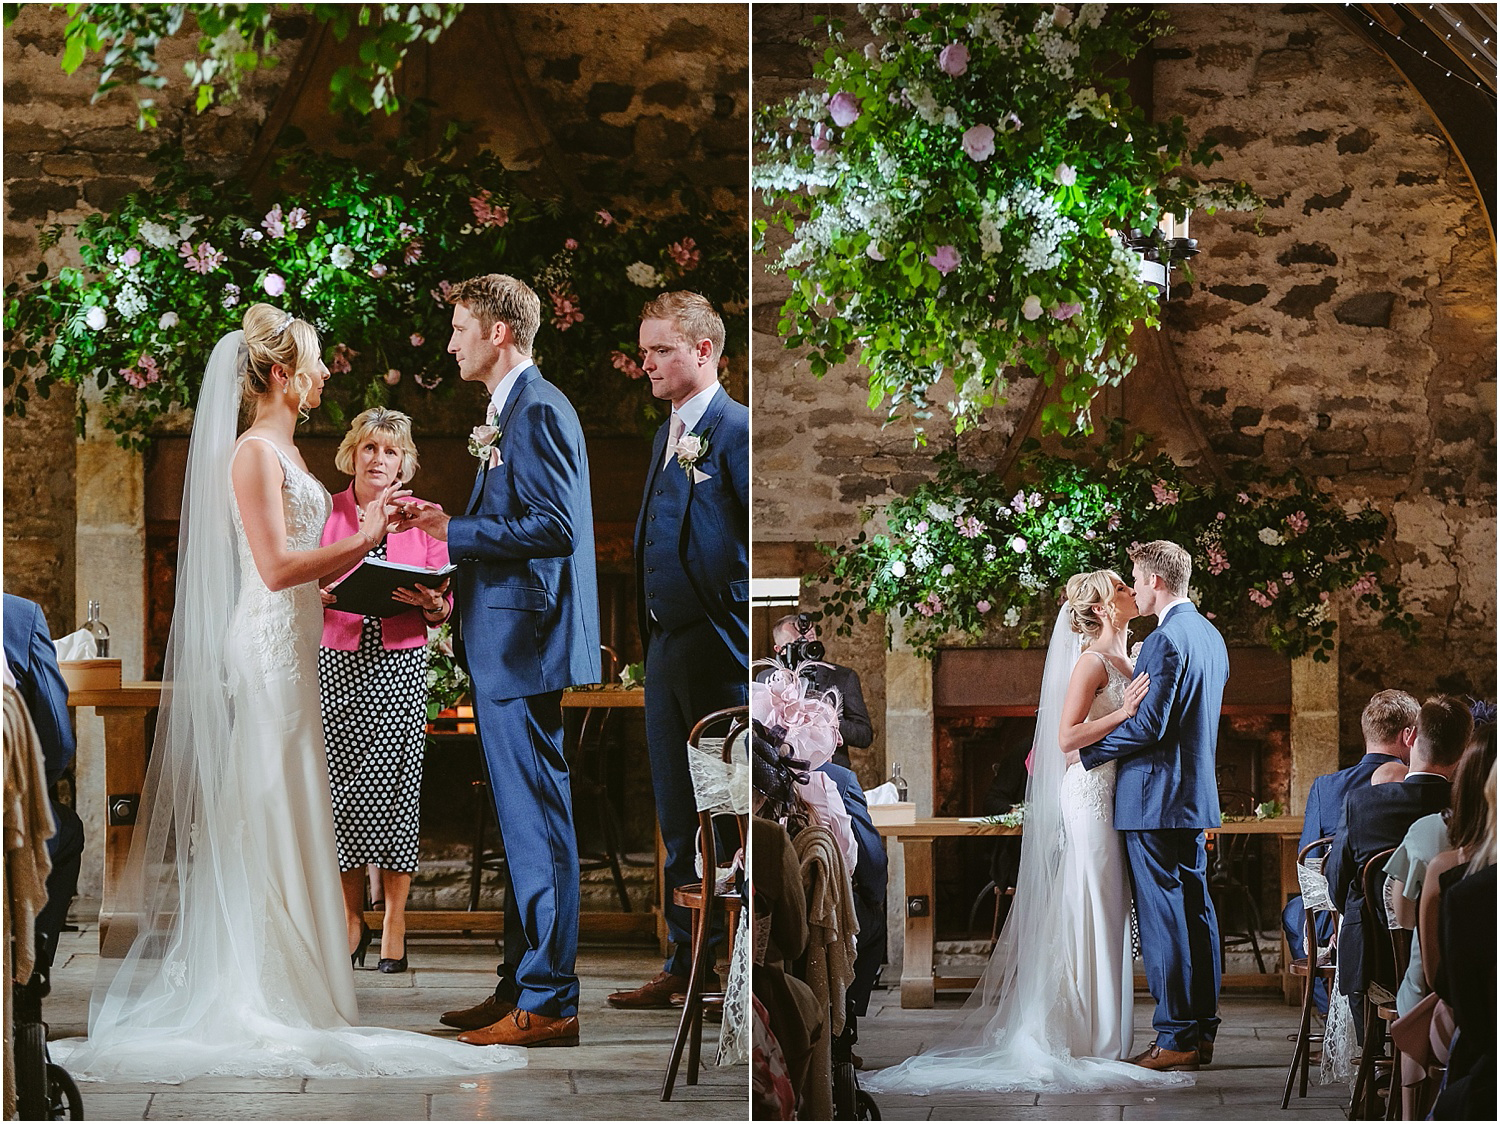 Healey Barn wedding by www.2tonephotography.co.uk 048.jpg